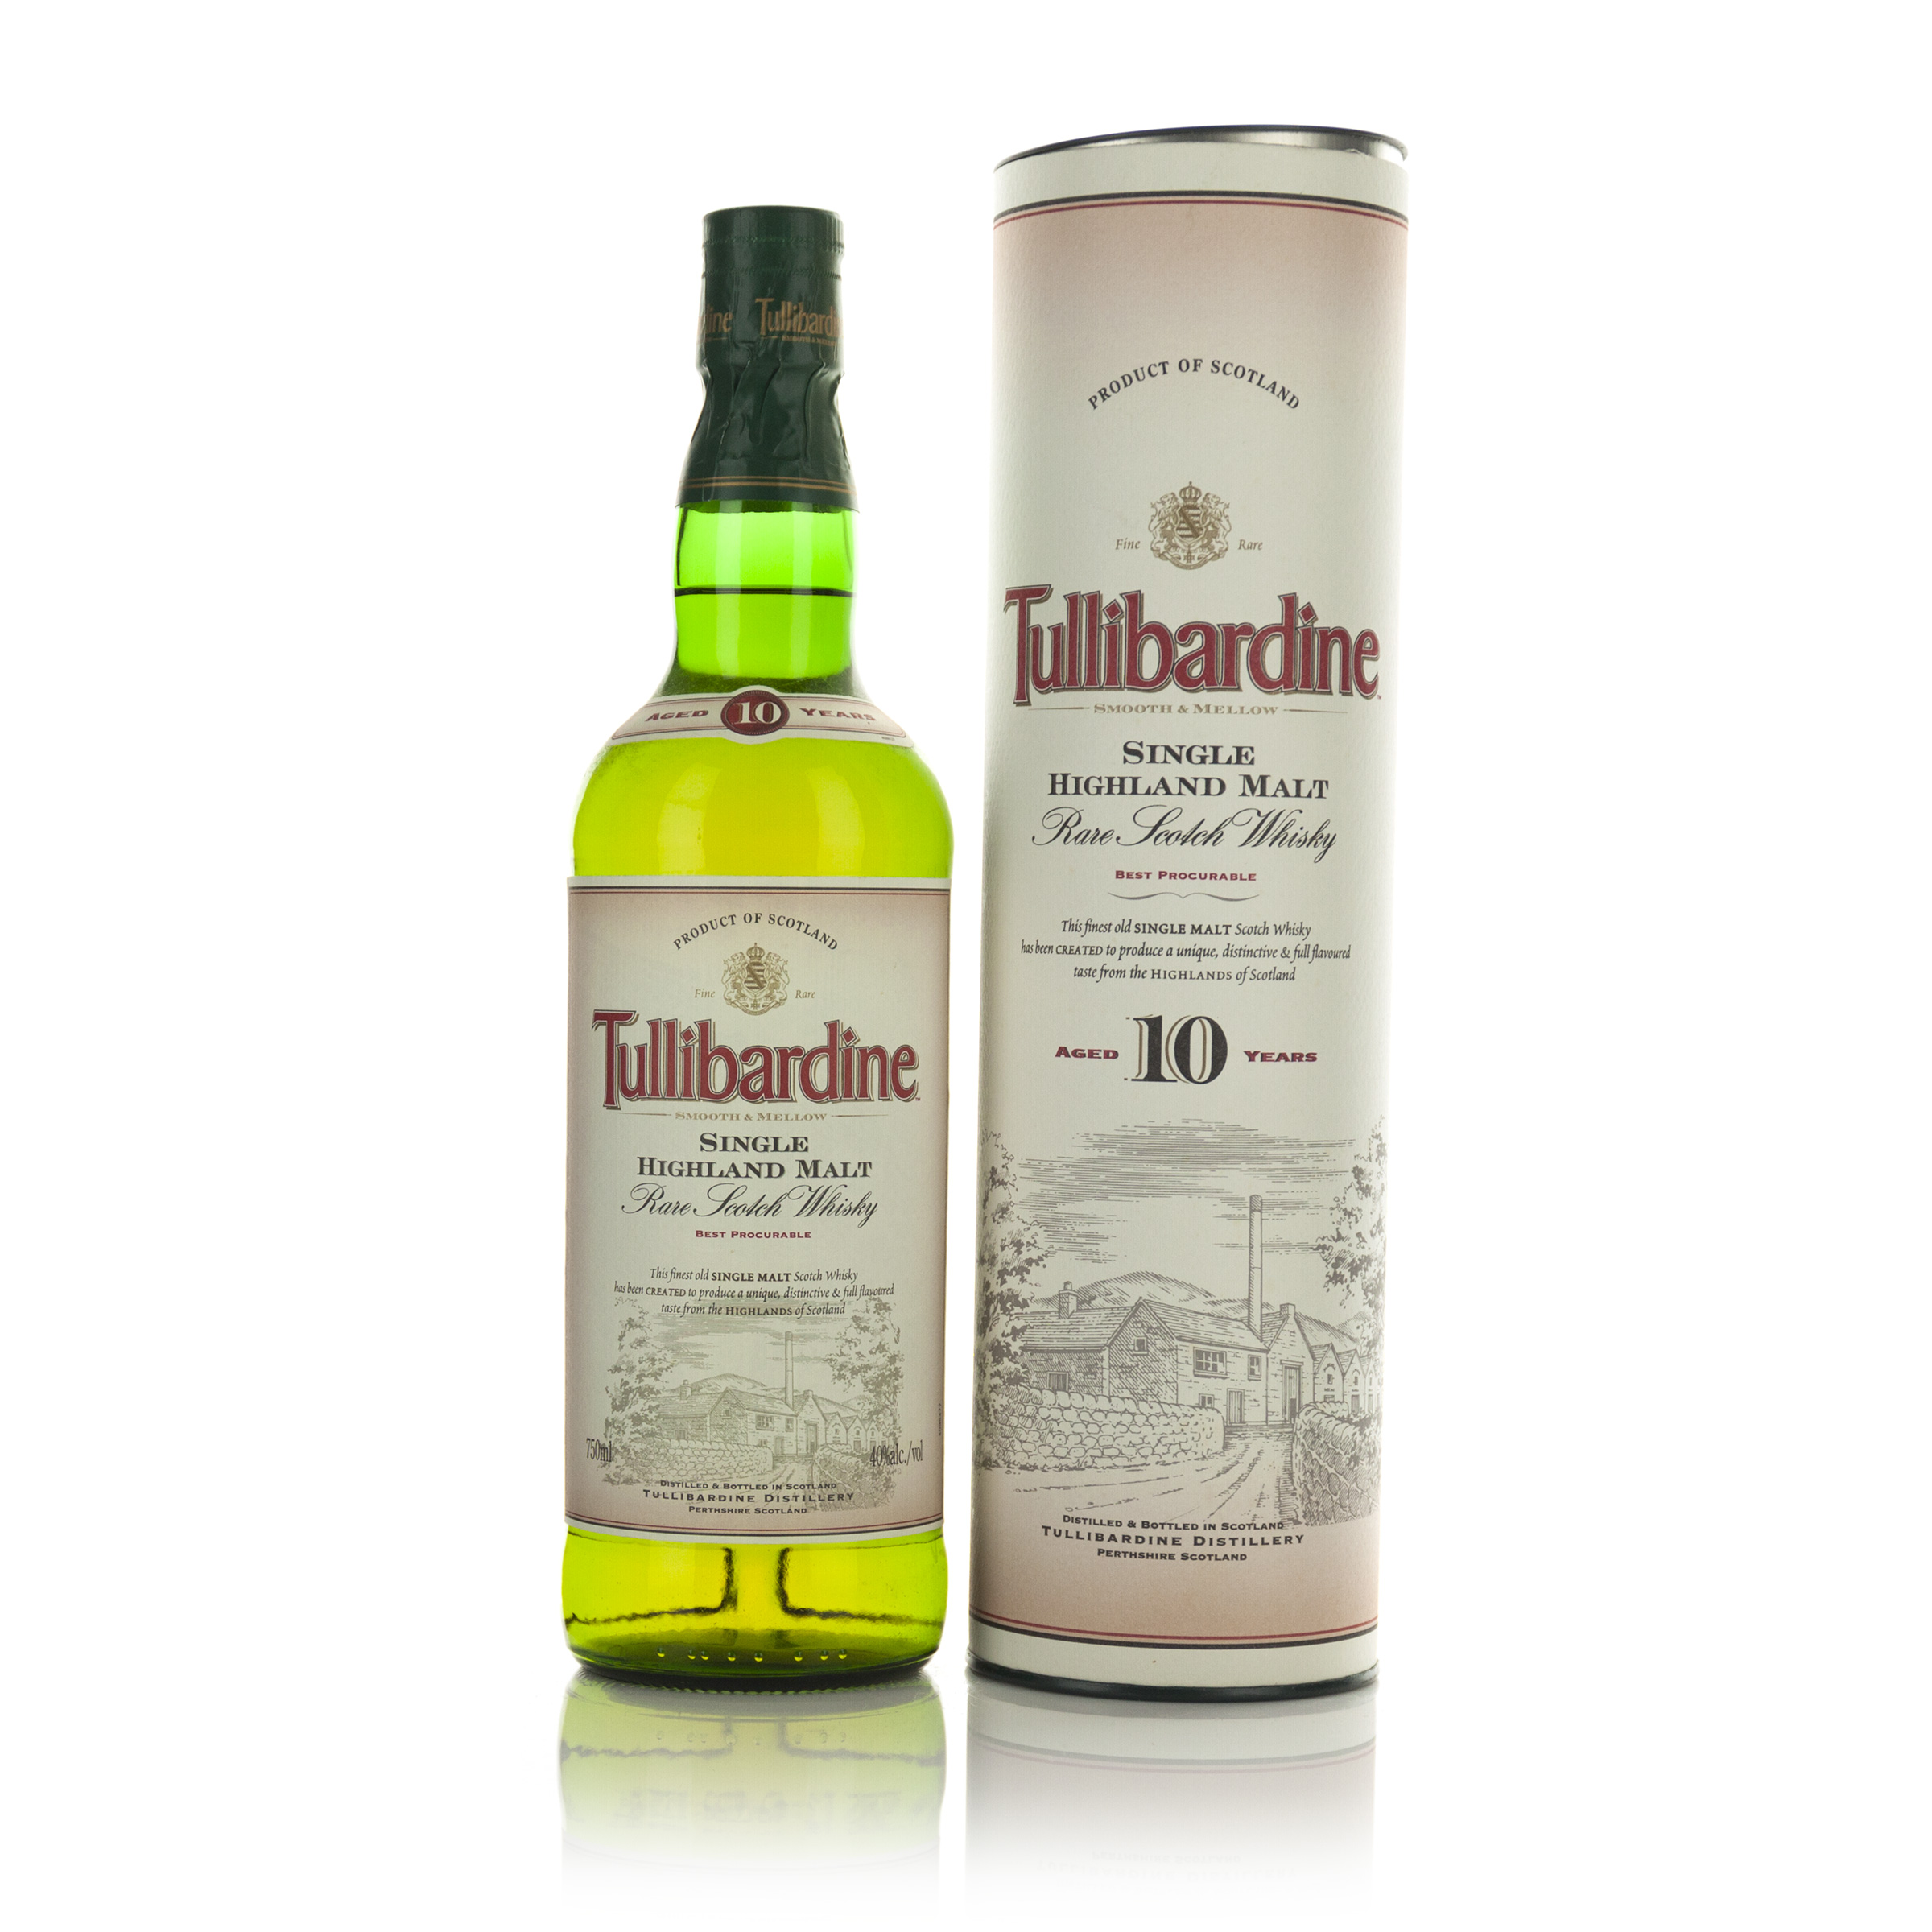 TULLIBARDINE SINGLE HIGHLAND MALT SCOTCH WHISKY 10 YEARS (ONE 750 ML)